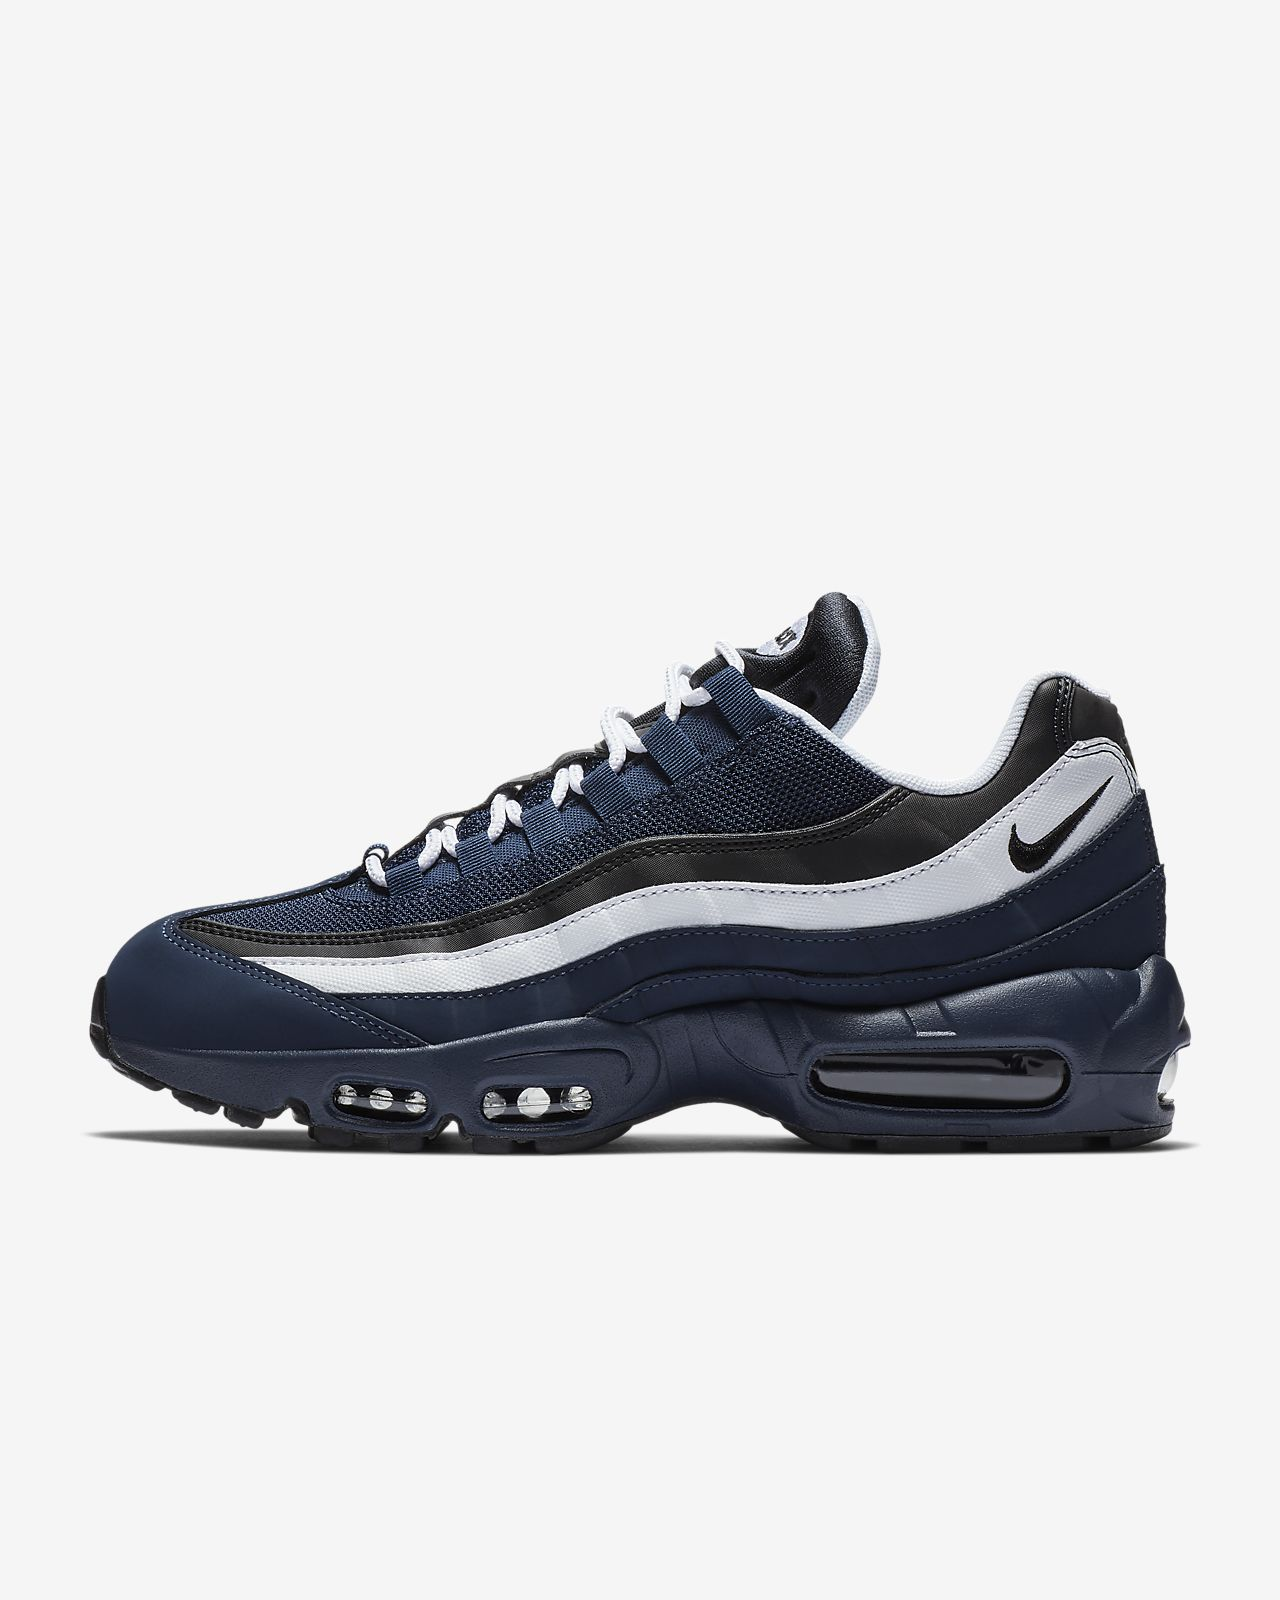 7cc041305125 Nike Air Max 95 Essential Men s Shoe. Nike.com NZ